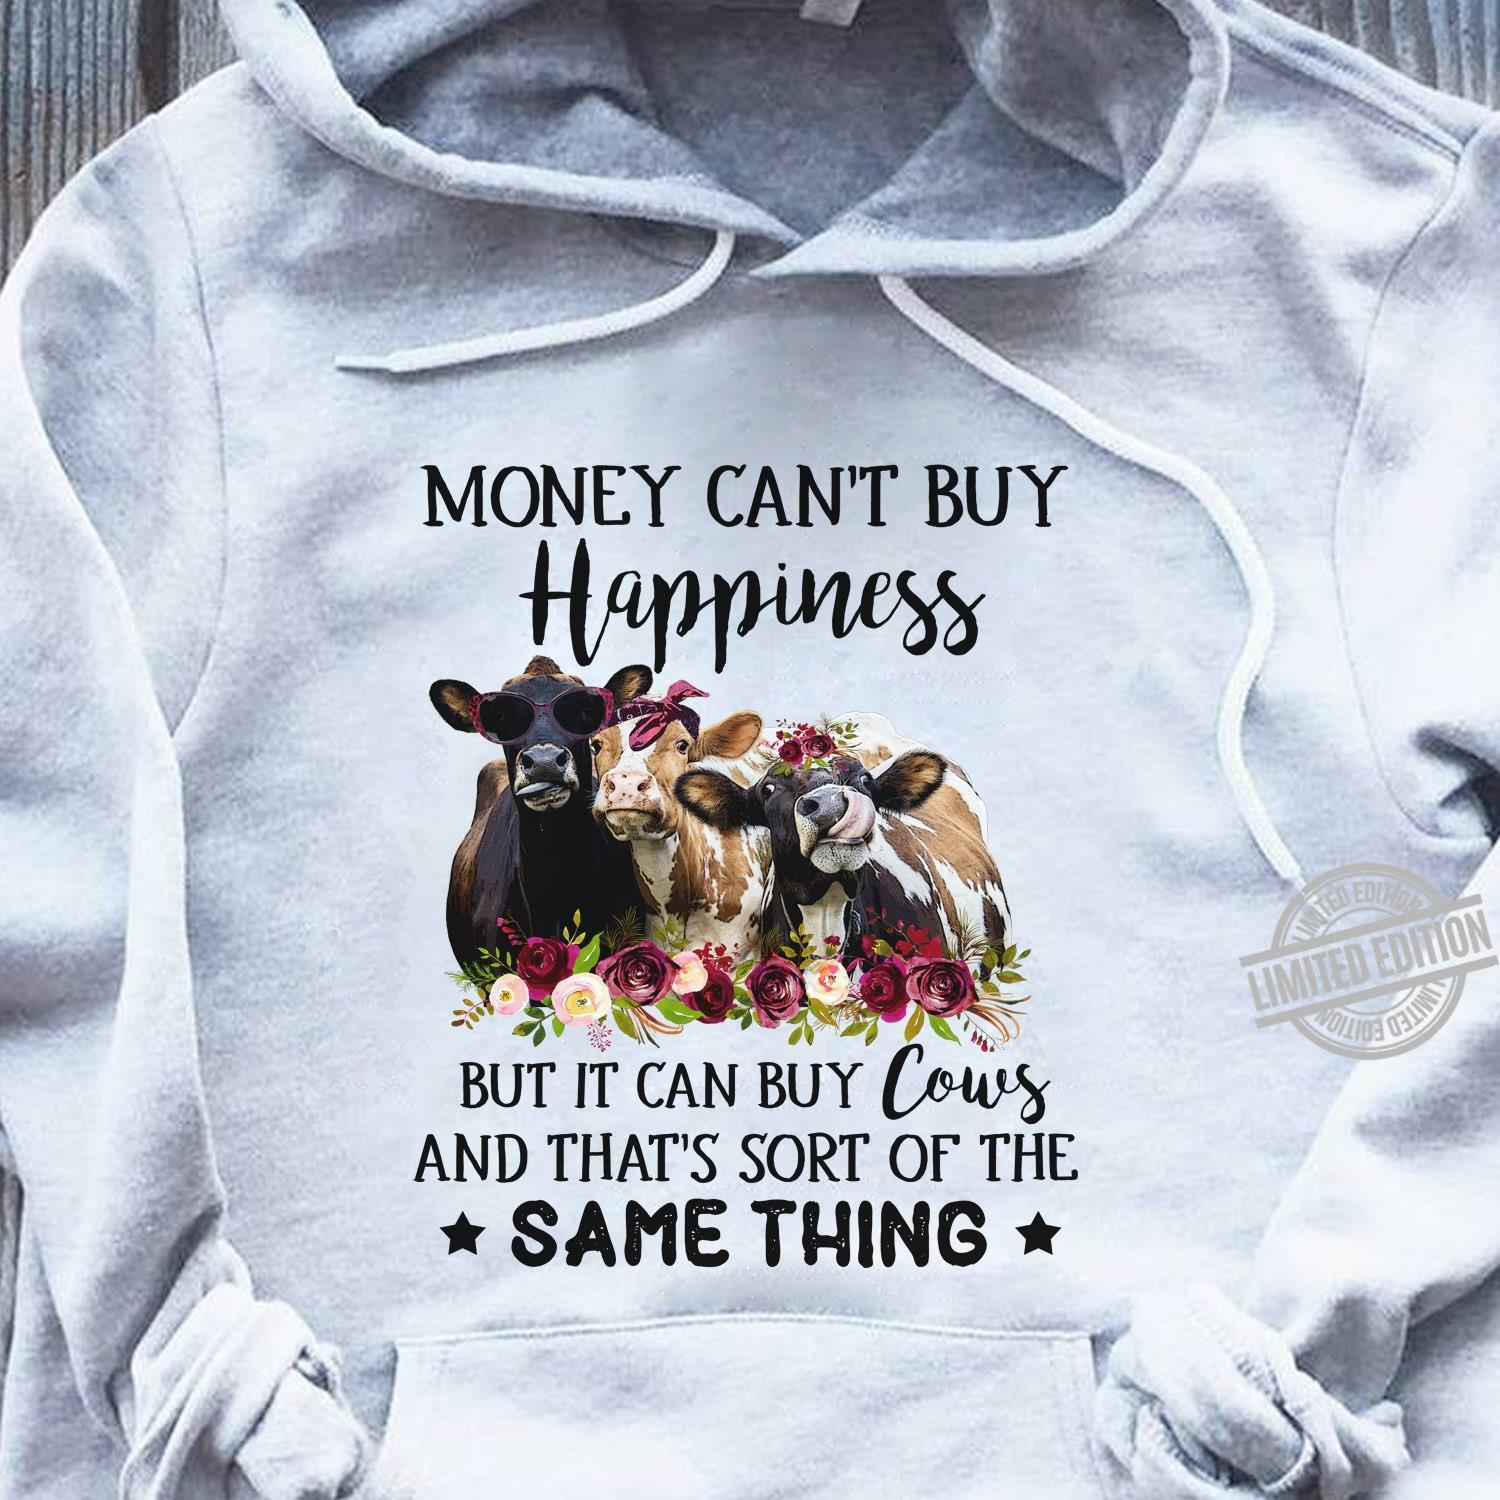 Money Can't Buy Happiness But It Can Buy Cows And That's Sort Of The Same Thing Shirt